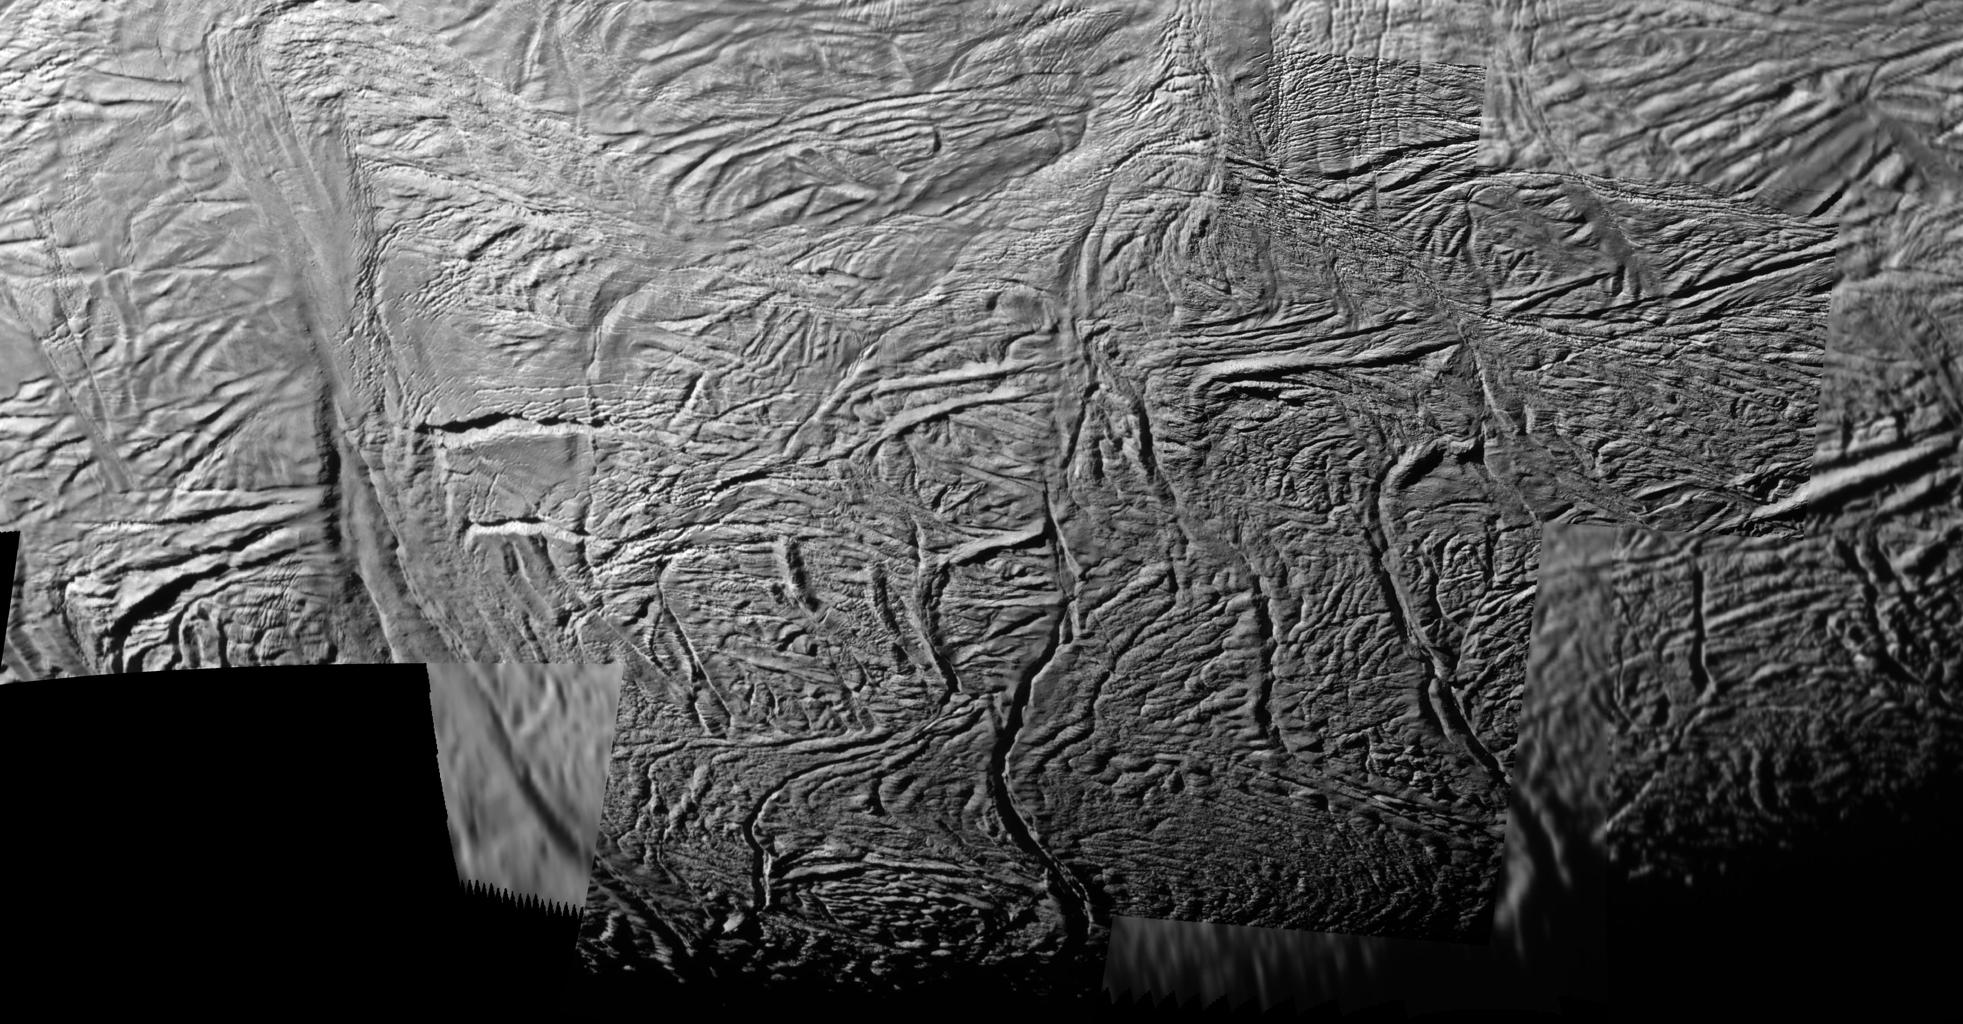 This mosaic shows extraordinary details of tectonic deformation in the fractured south polar region of Saturn's moon Enceladus, where jets of water ice spray outward to form Saturn's E ring. The images were captured by NASA's Cassini spacecraft.